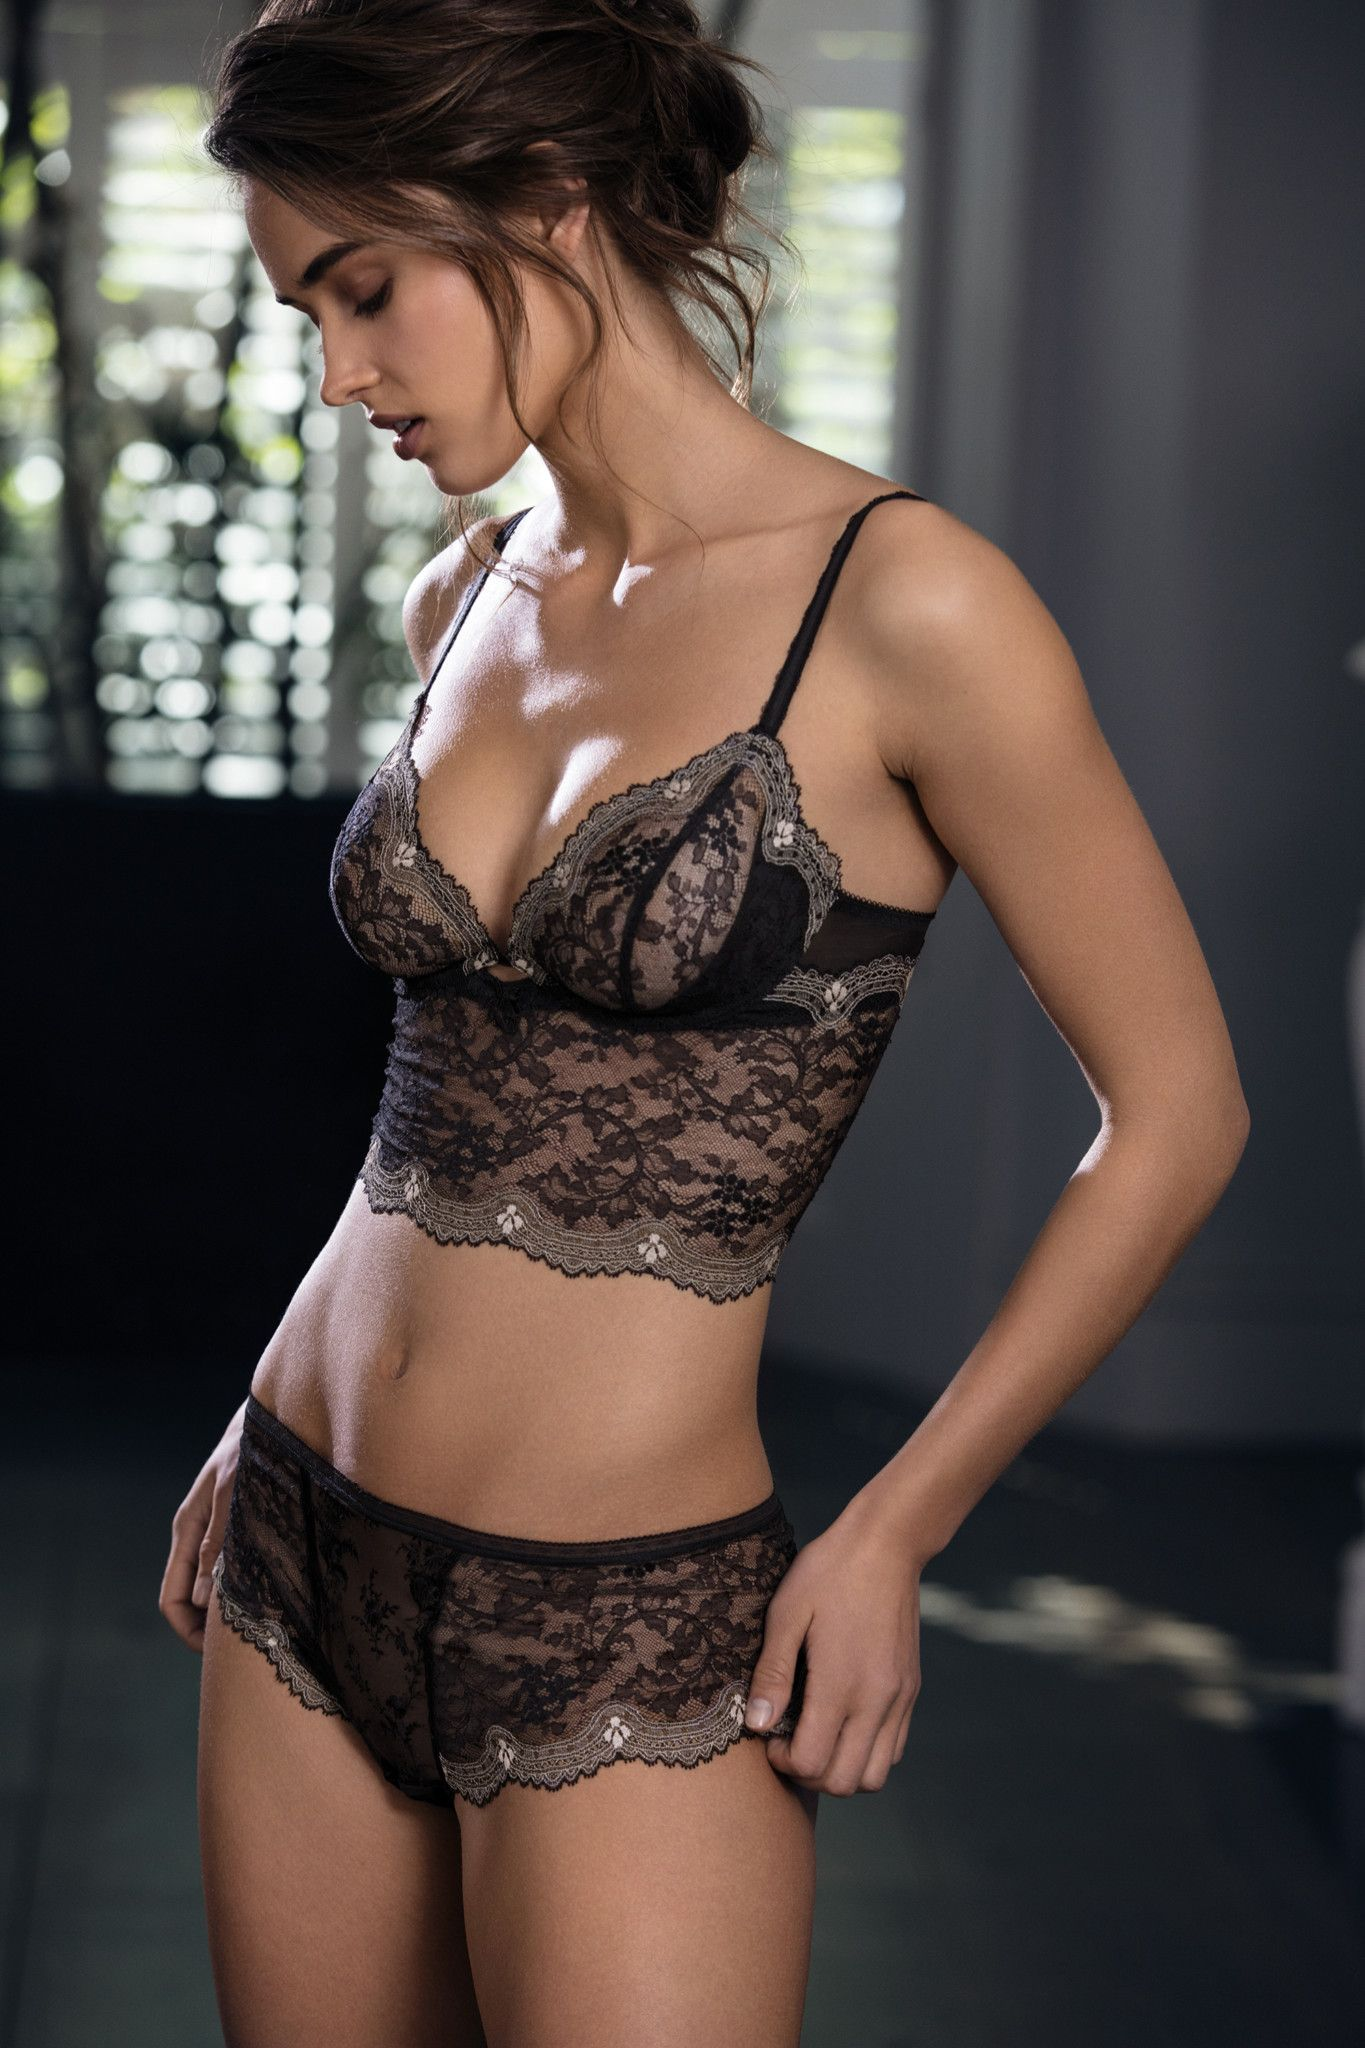 314d6a284b The lingerie and swimwear group unveils the latest collections from Freya